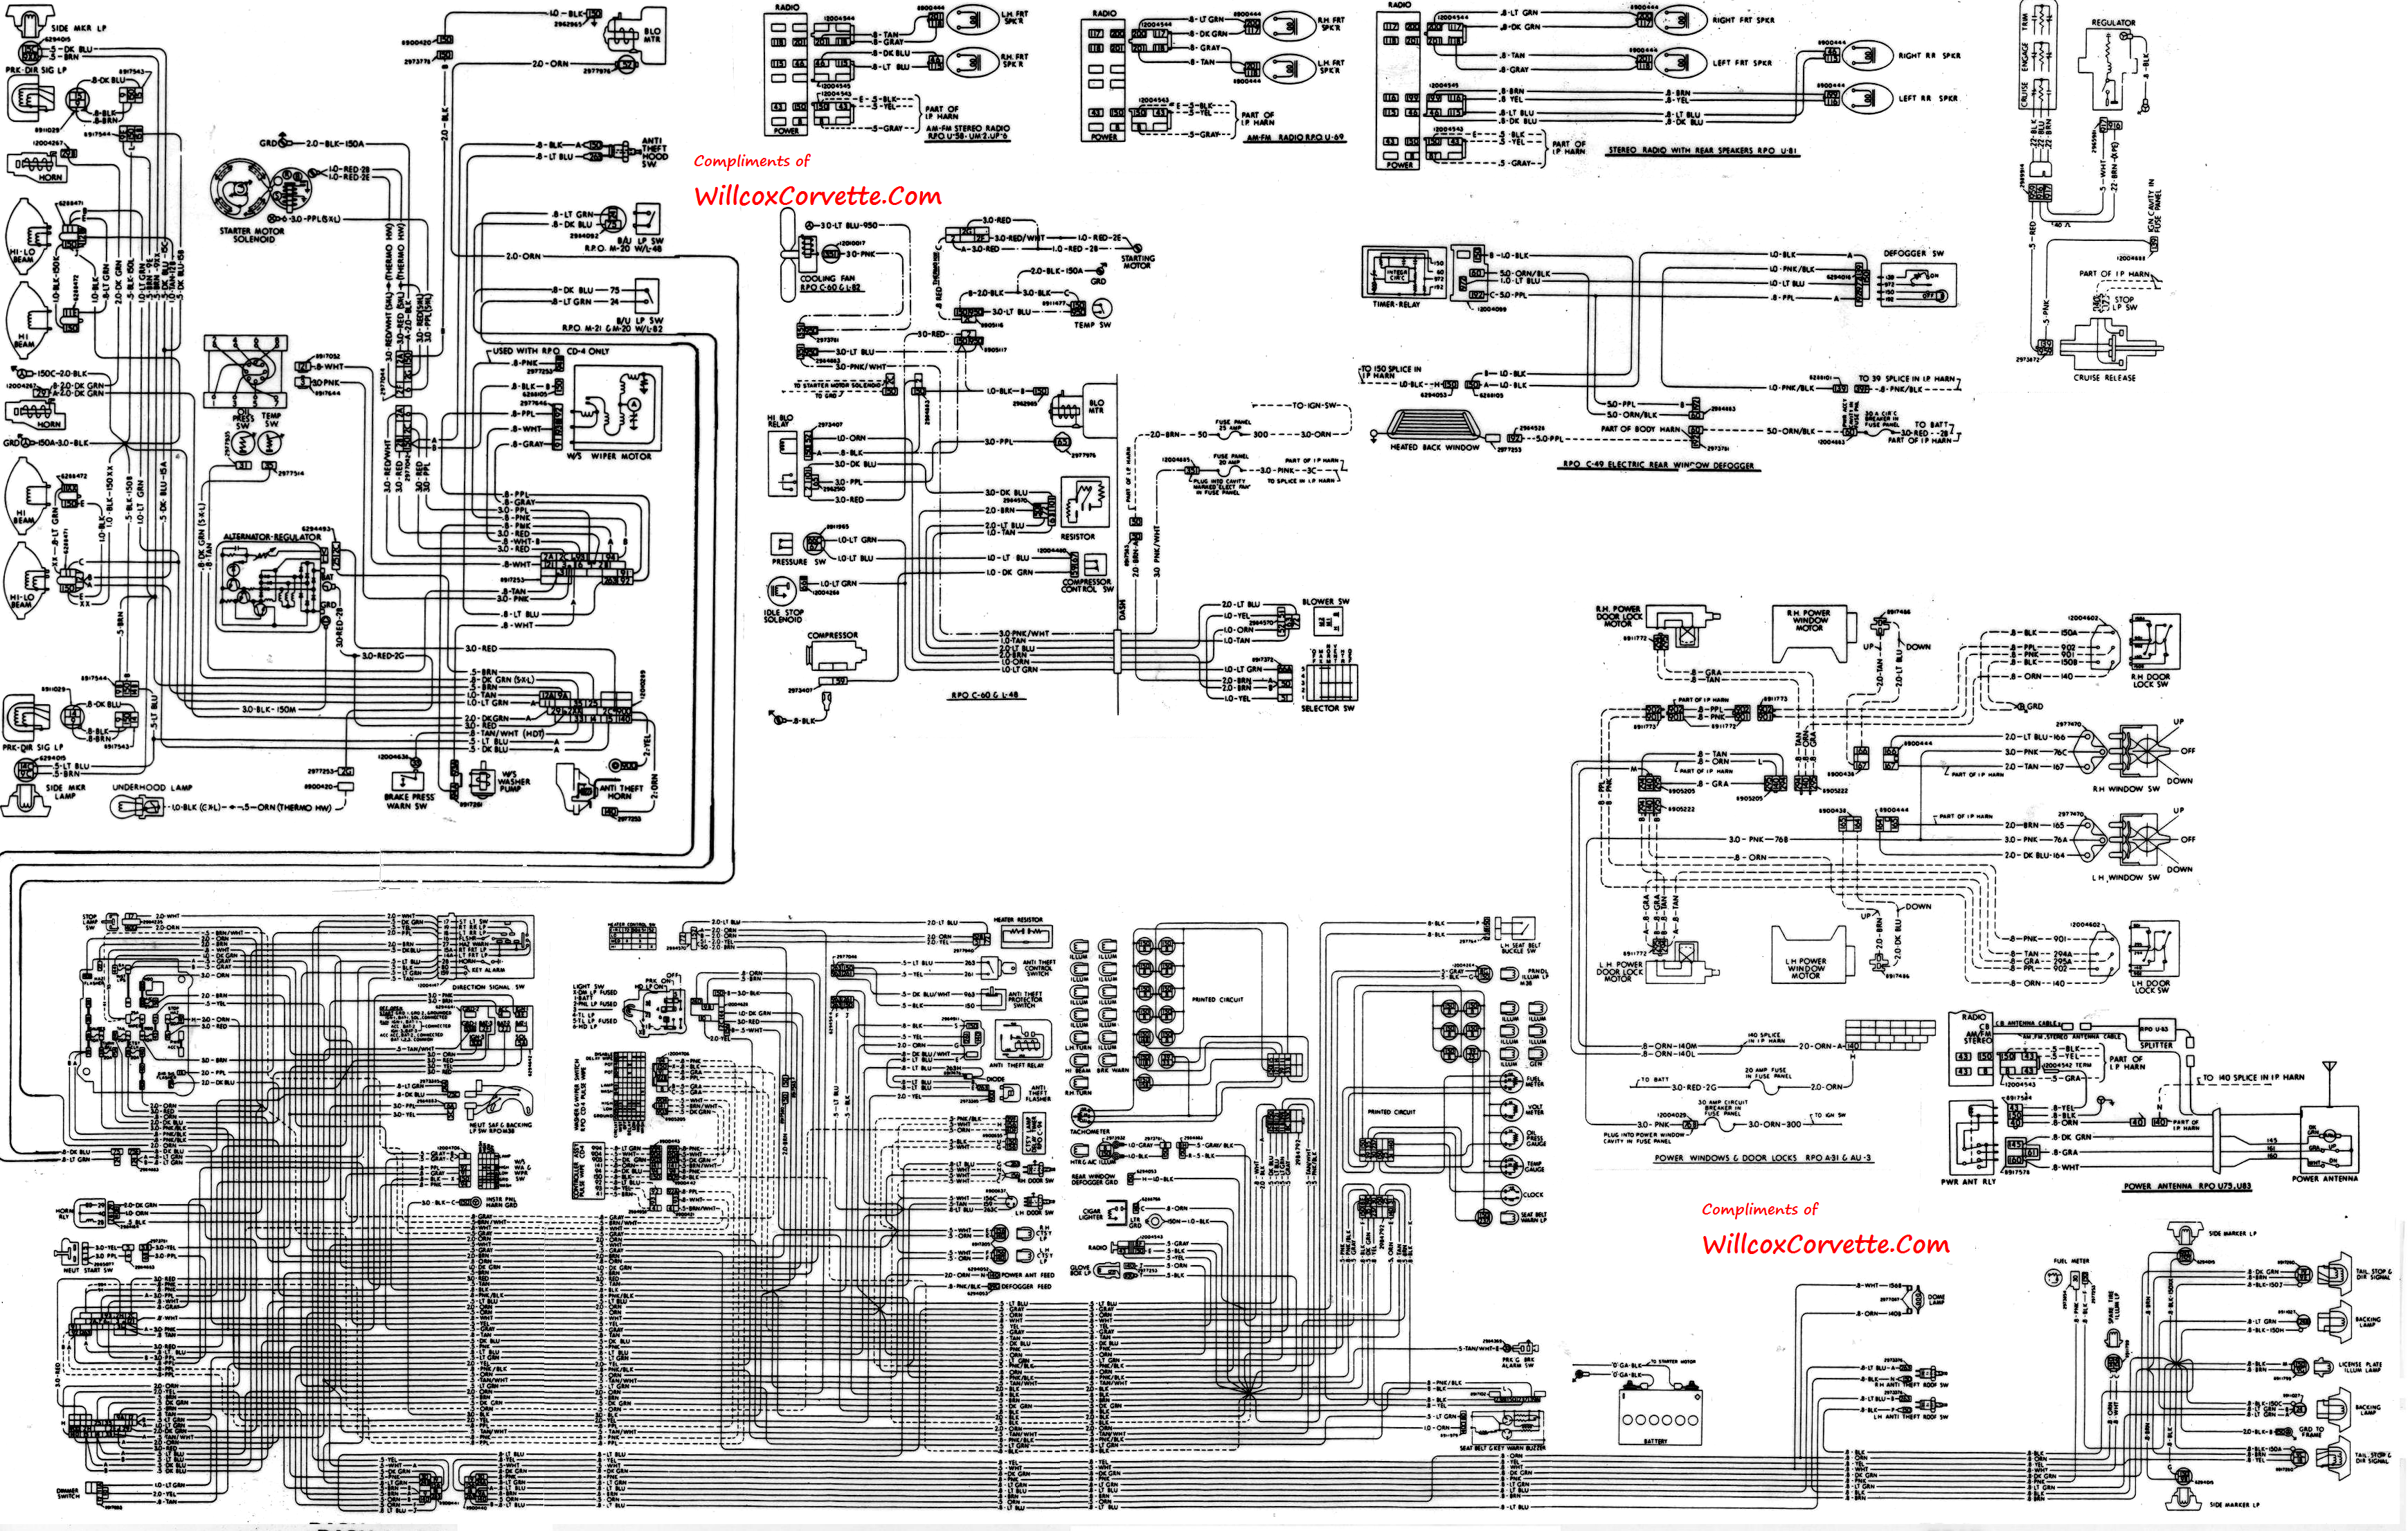 1979 wire diagram 1984 corvette wiring diagram free 1986 corvette wiring diagrams 2000 C5 Corvette Wiring Diagram at gsmx.co